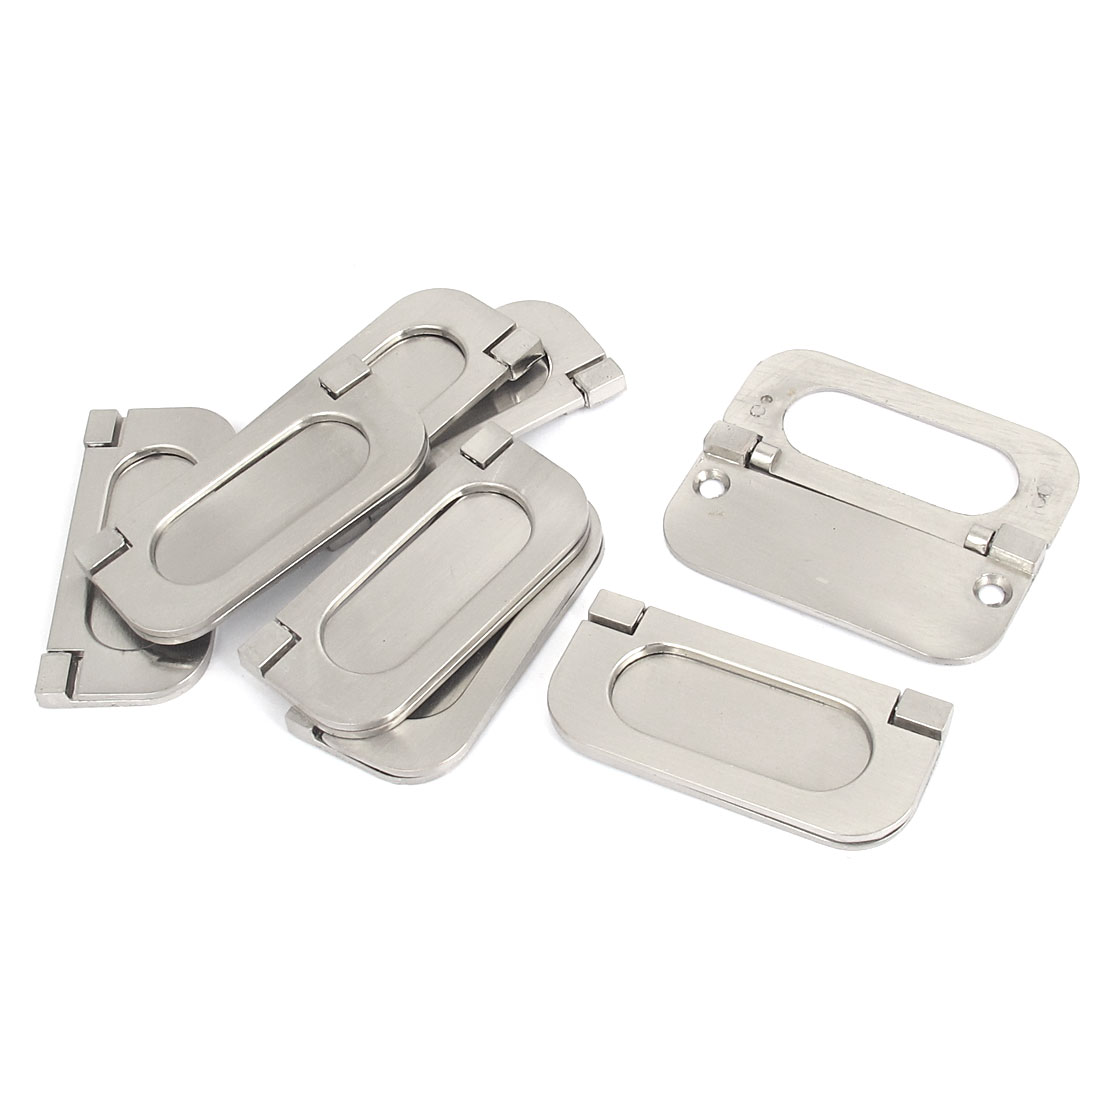 63mm Fixing Distance Cabinet Metal Rectangle Pull Handle Silver Tone 8 Pcs